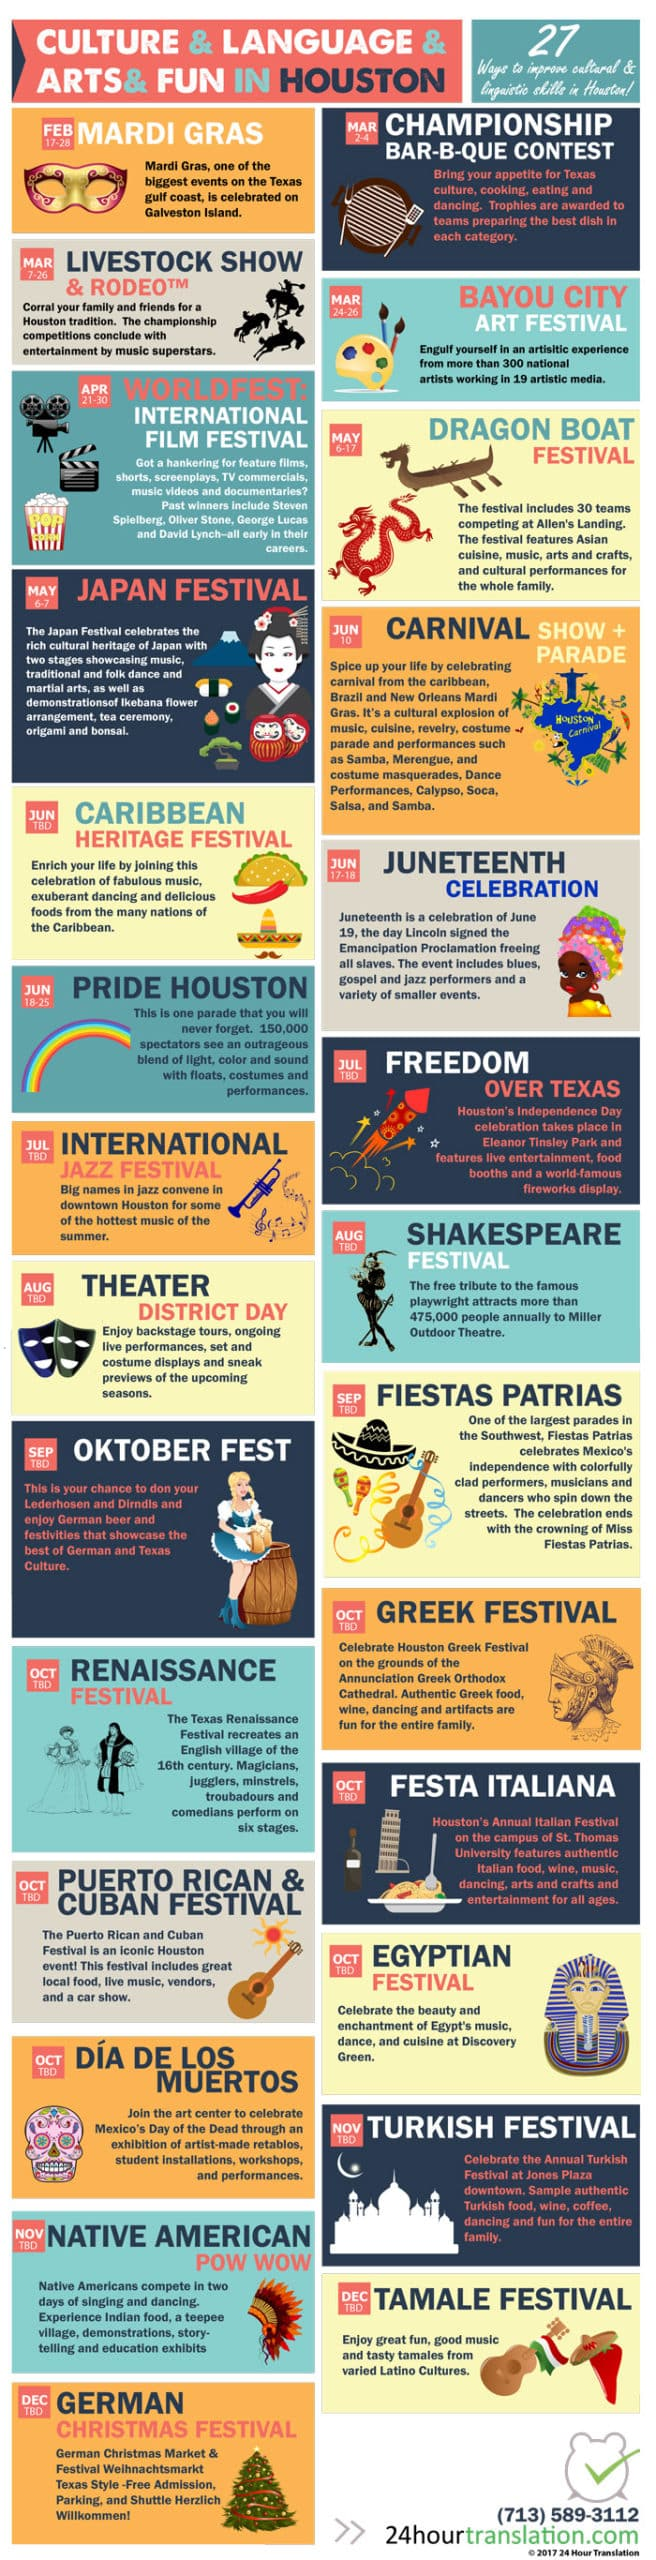 infographic Houston Festivals Houston Cultural Events, activities that offer culture, language, arts, fun and learning activities. Activities for January, February, March, April, May, June, July, August, September, October, November and Decemober. Geared towards helping people learn translations skills in Spanish, Turkish, German, Hindi, Chinese, Japanese, French and Portuguese.